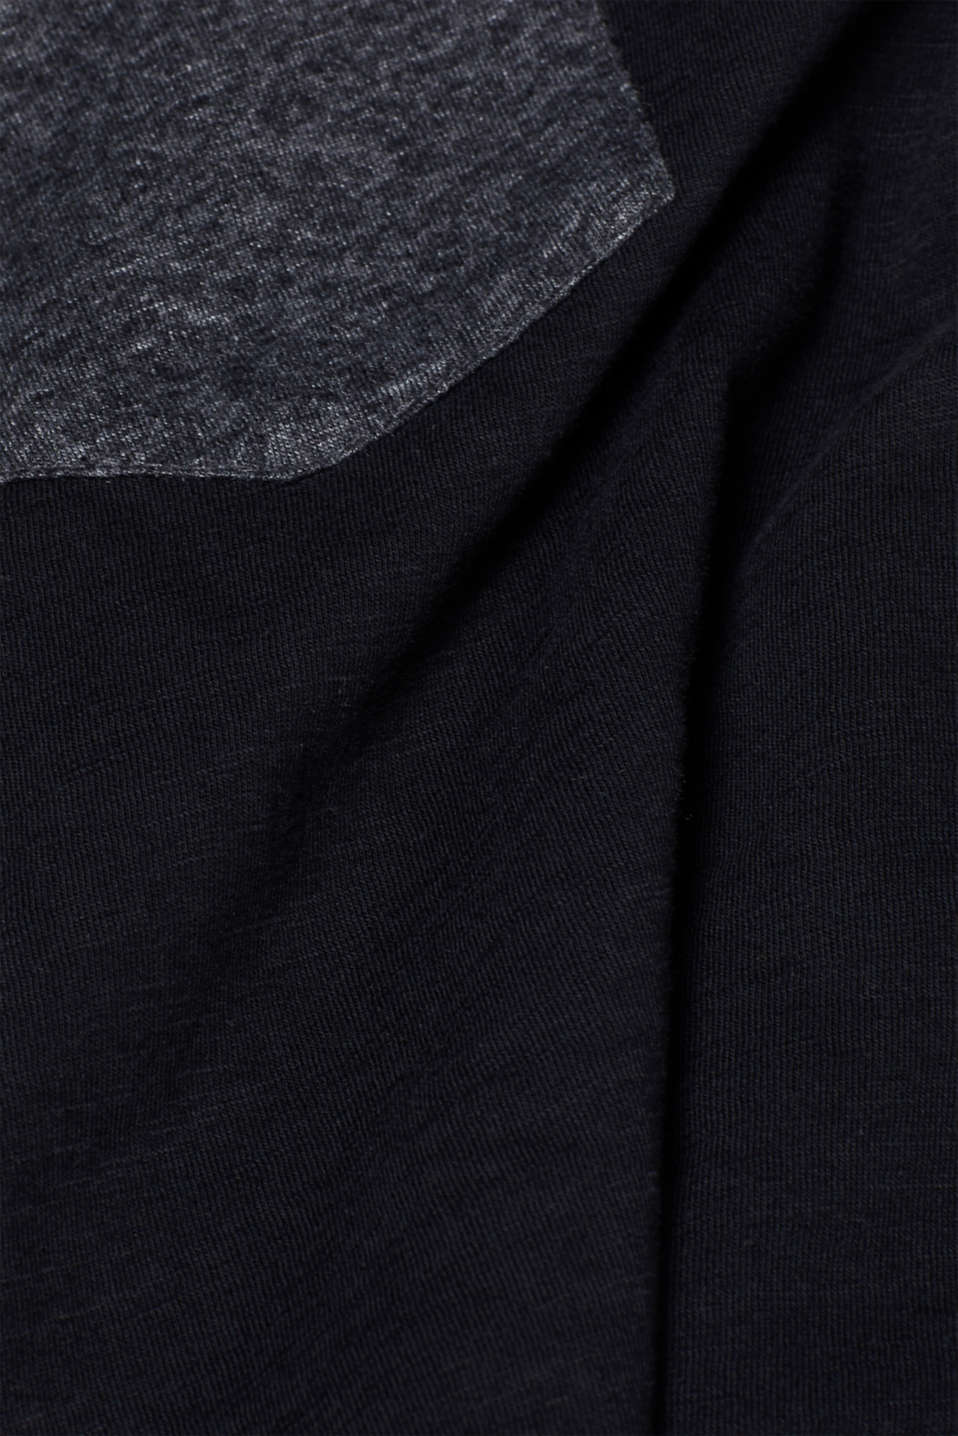 Jersey T-shirt in 100% cotton, BLACK, detail image number 4